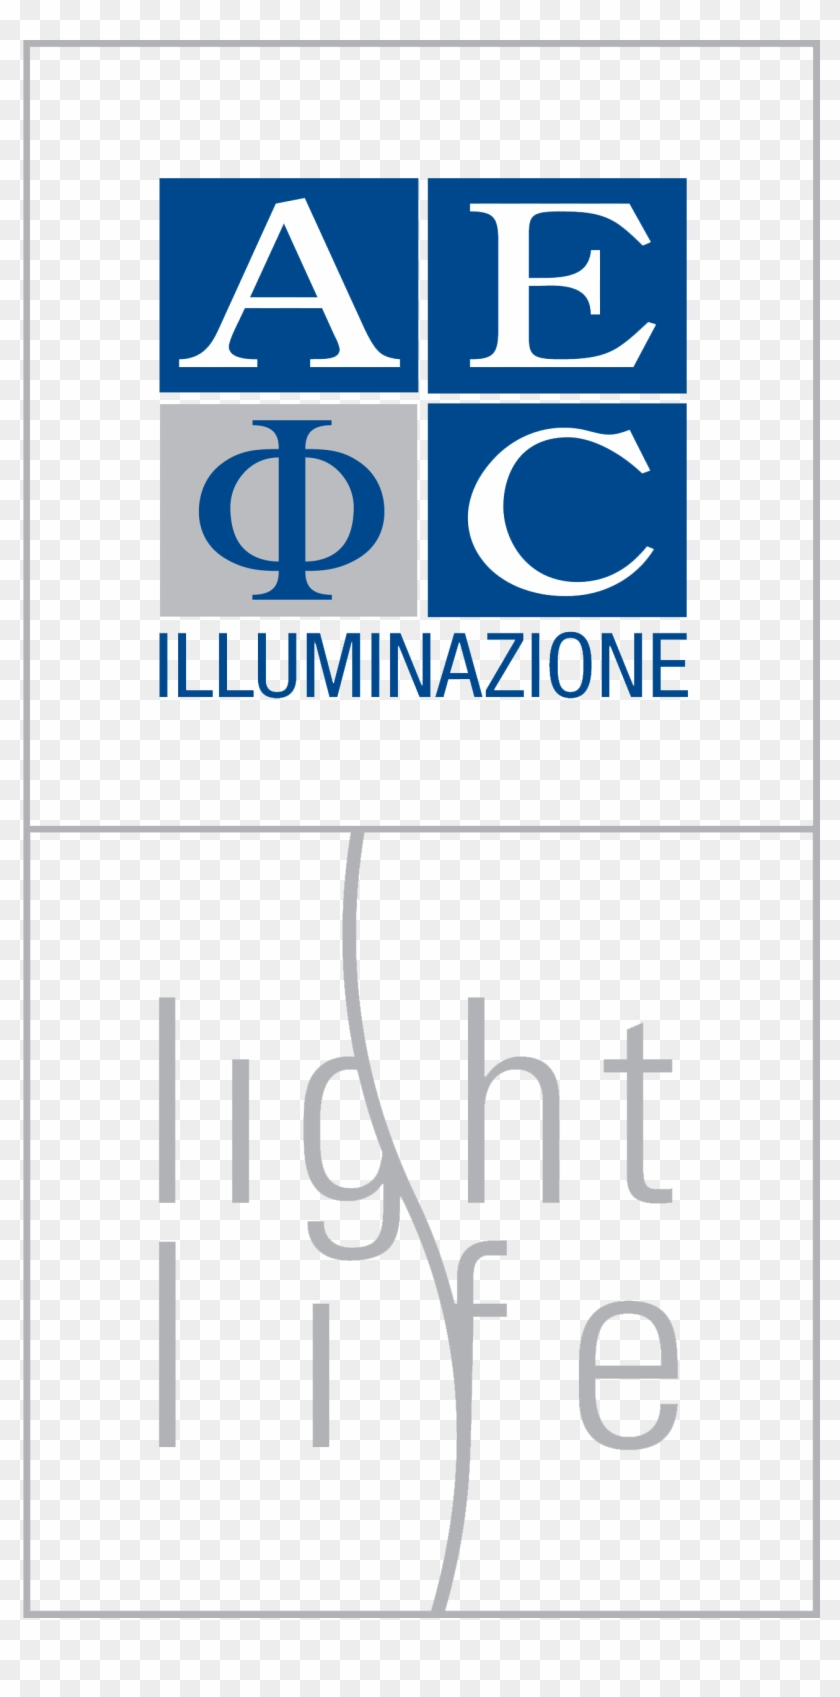 Market Leader In Street Urban And Decorative Lighting Aec Illuminazione Logo Hd Png Download 1291x2548 5757439 Pngfind